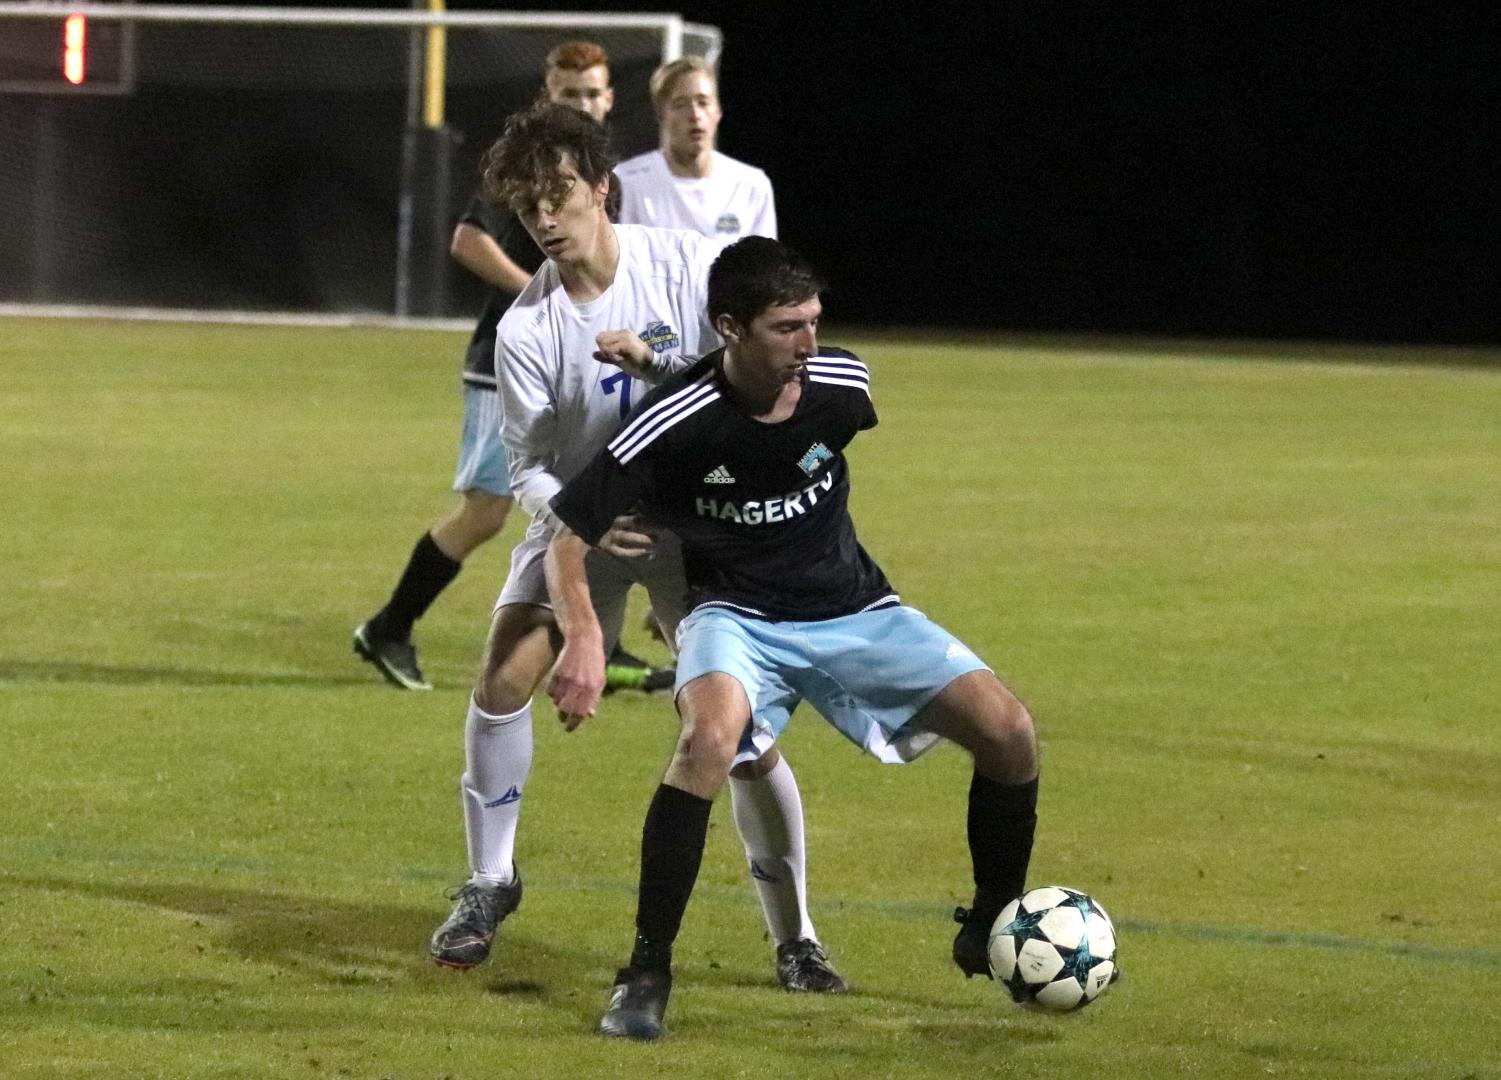 Outside midfielder Evan Sorace maintains possession against a Lyman defender. Sorace scored on a penalty kick to help the team to a 4-0 shutout.